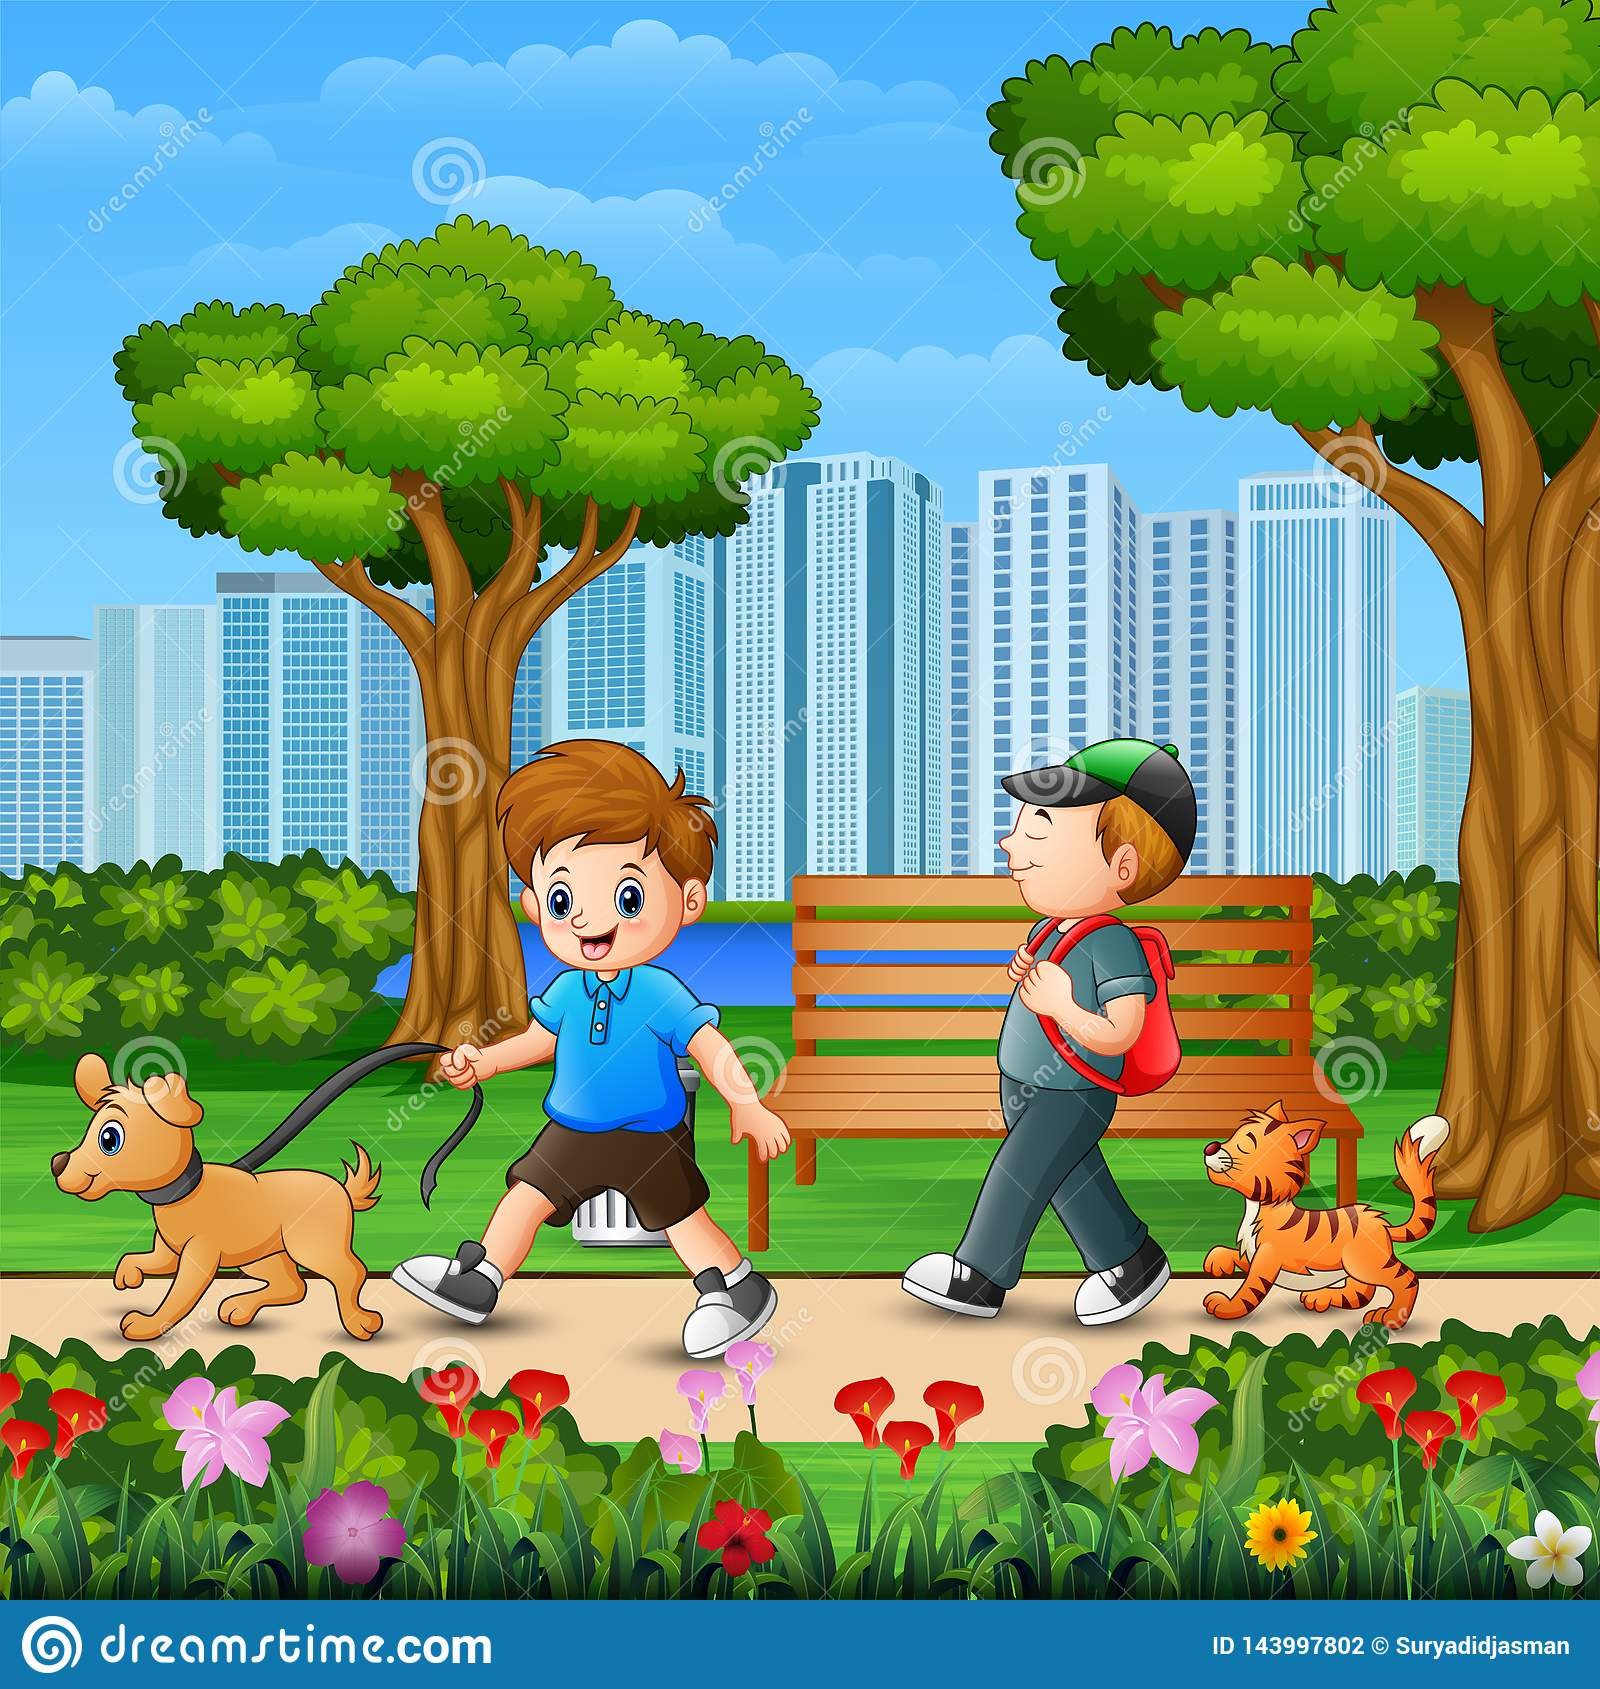 Guys Two Walking Stock Illustrations – 45 Guys Two Walking Stock  Illustrations, Vectors & Clipart - Dreamstime